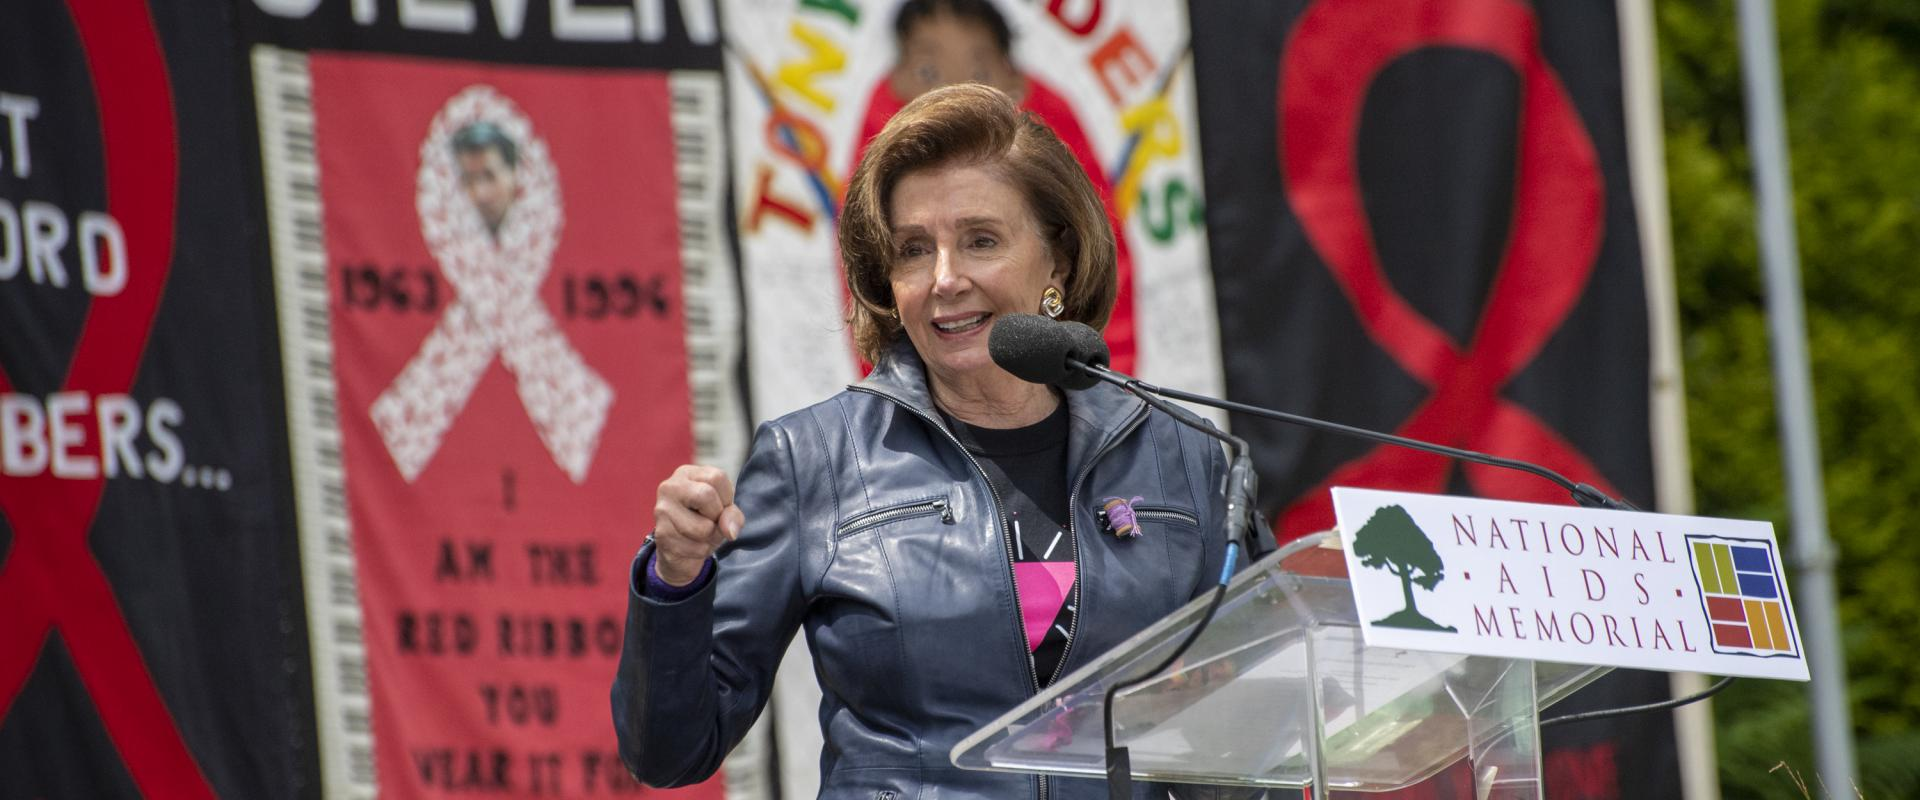 Congresswoman Nancy Pelosi joined the National AIDS Memorial in remembrance to solemnly mark 40 years since the beginning of the AIDS epidemic; mourning the hundreds of thousands of Americans we have lost to this vicious disease.  Fighting HIV/AIDS has be